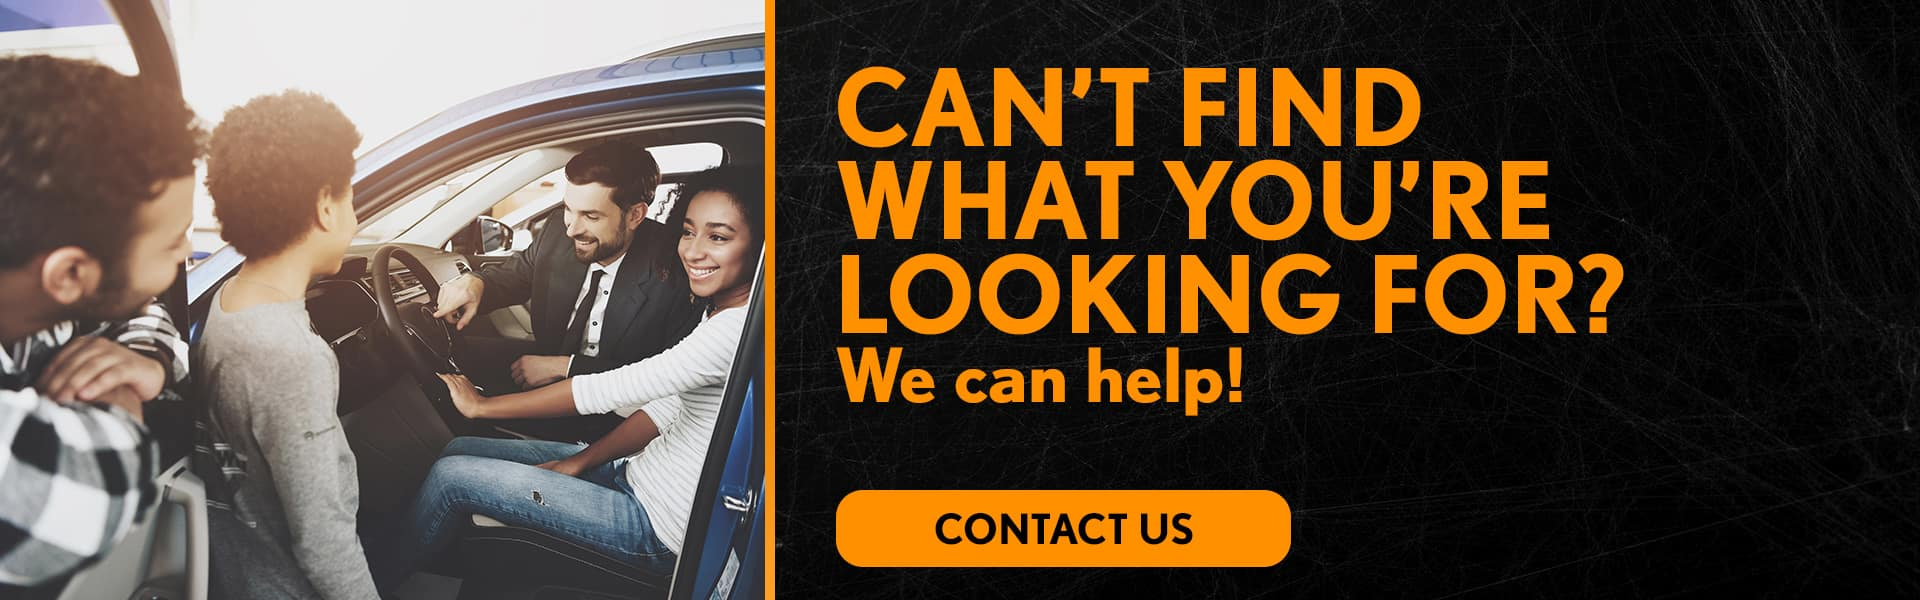 We Can Help You Find Your Car in Mobile, AL